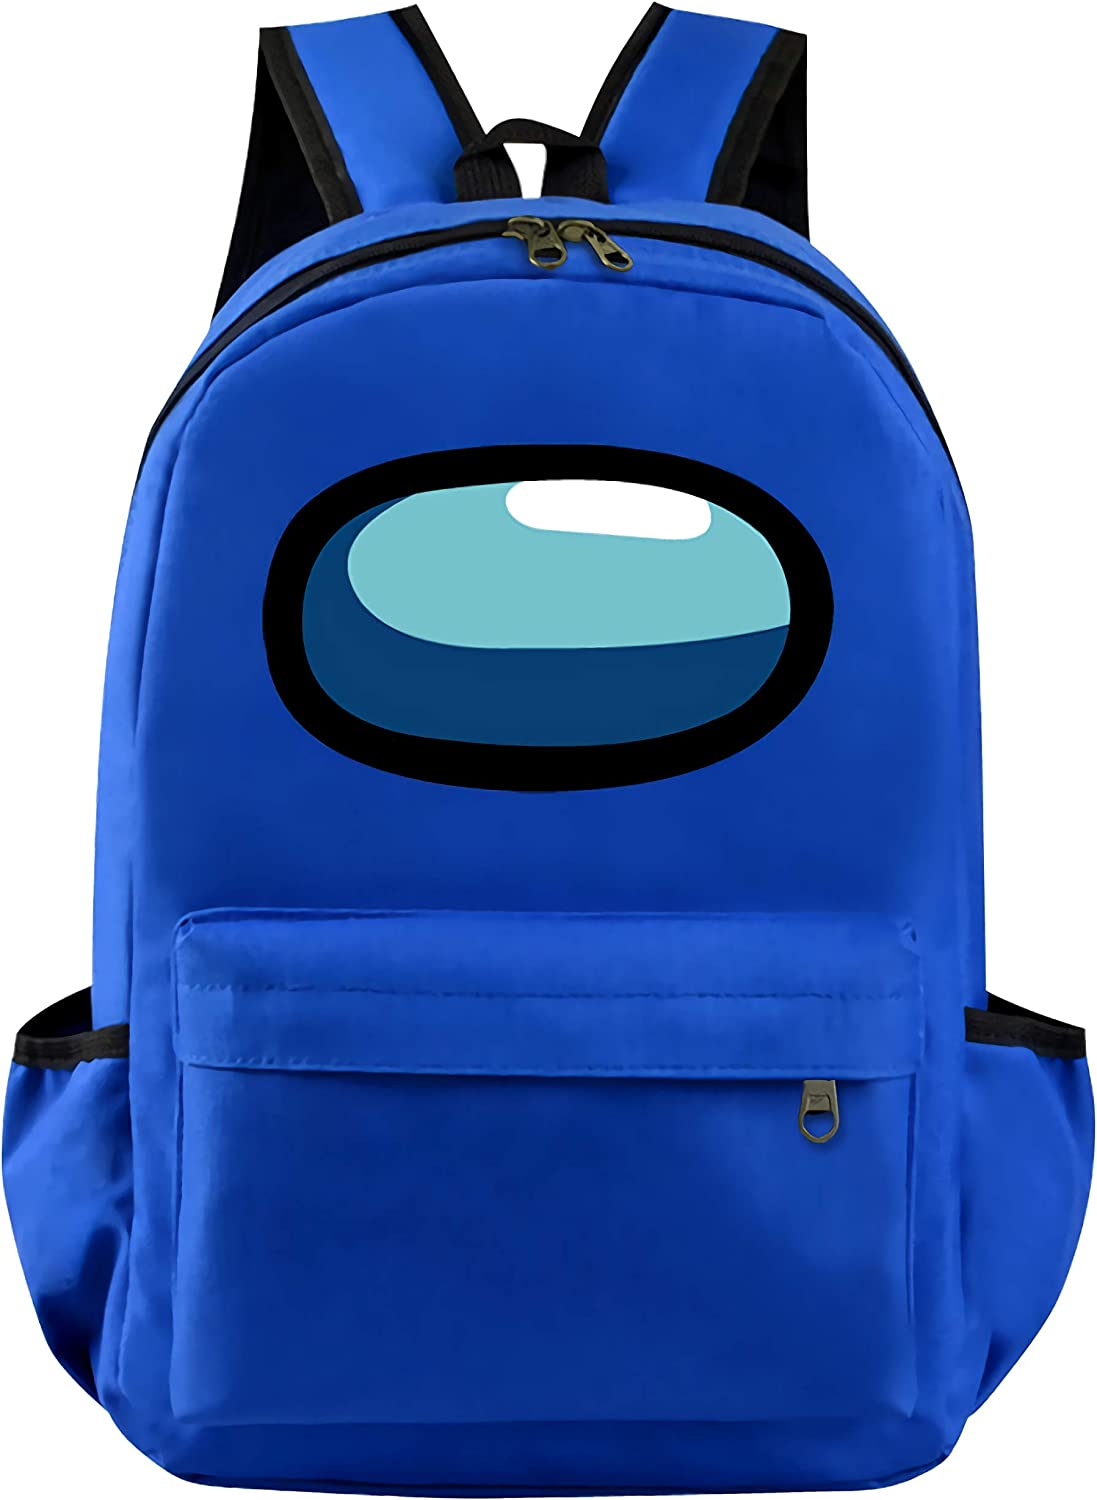 WOZHIFU Among Us Outlet sale feature Backpack For Kids Boys Children Over item handling Girls School Da